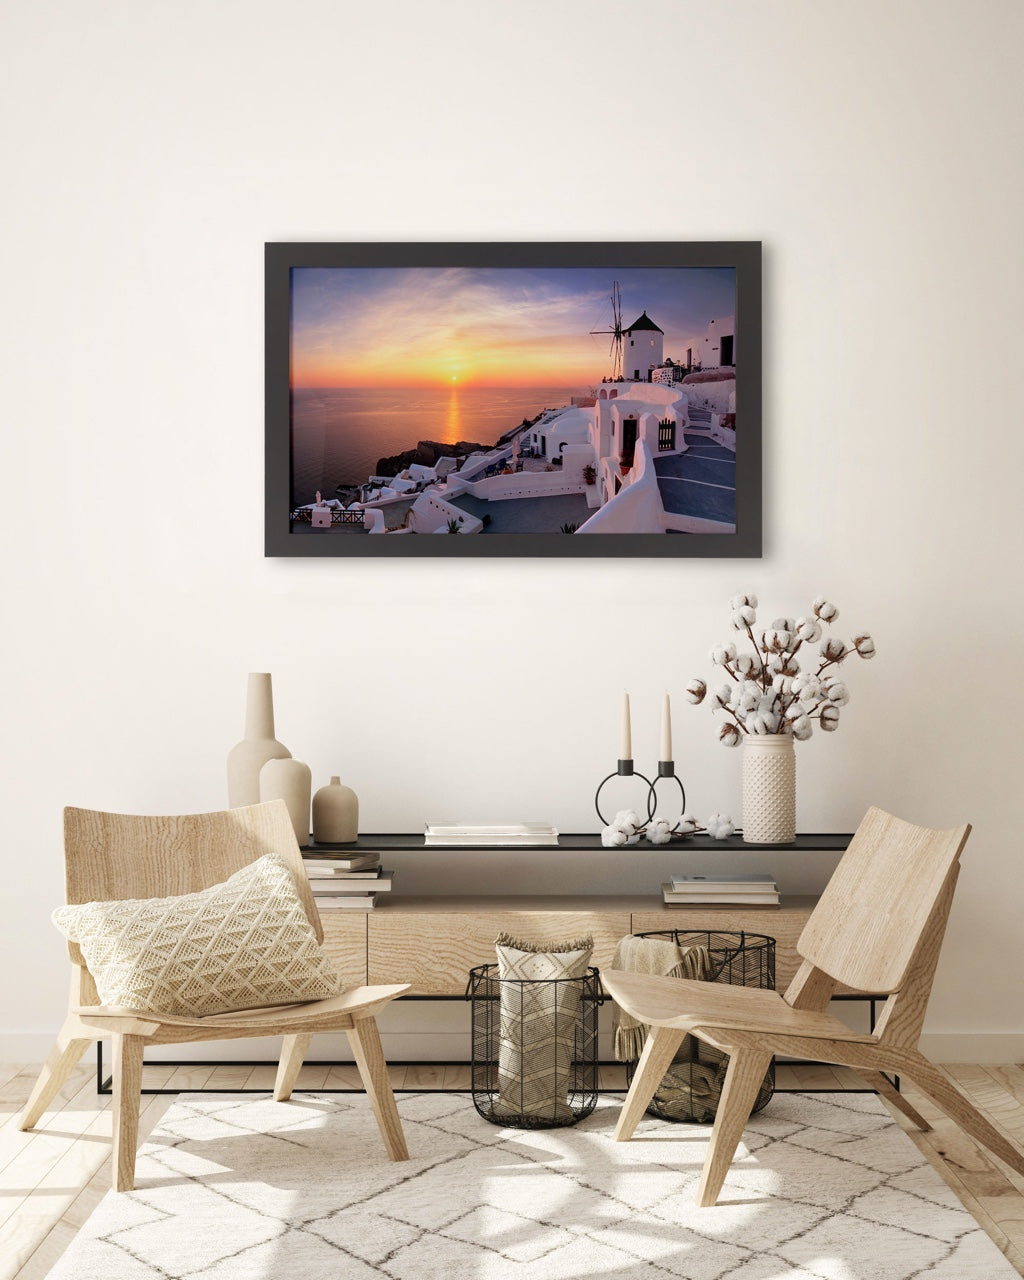 Framed Greece photo art print in living room